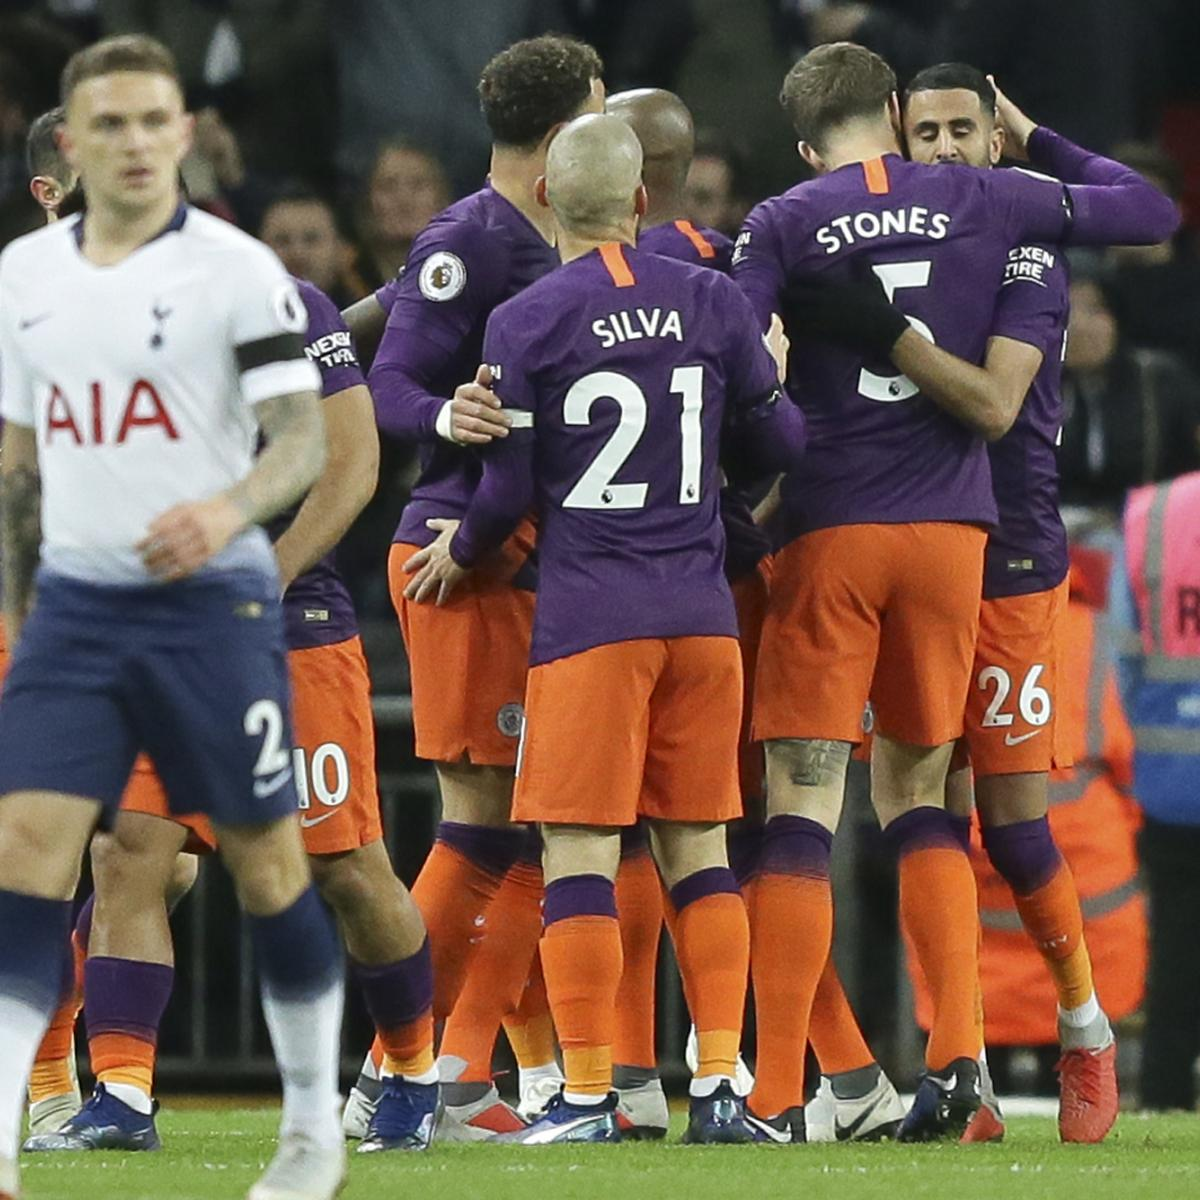 Who Will Lead The Attack For Tottenham In The Absence Of: Riyad Mahrez Goal Lifts Manchester City Past Tottenham 1-0